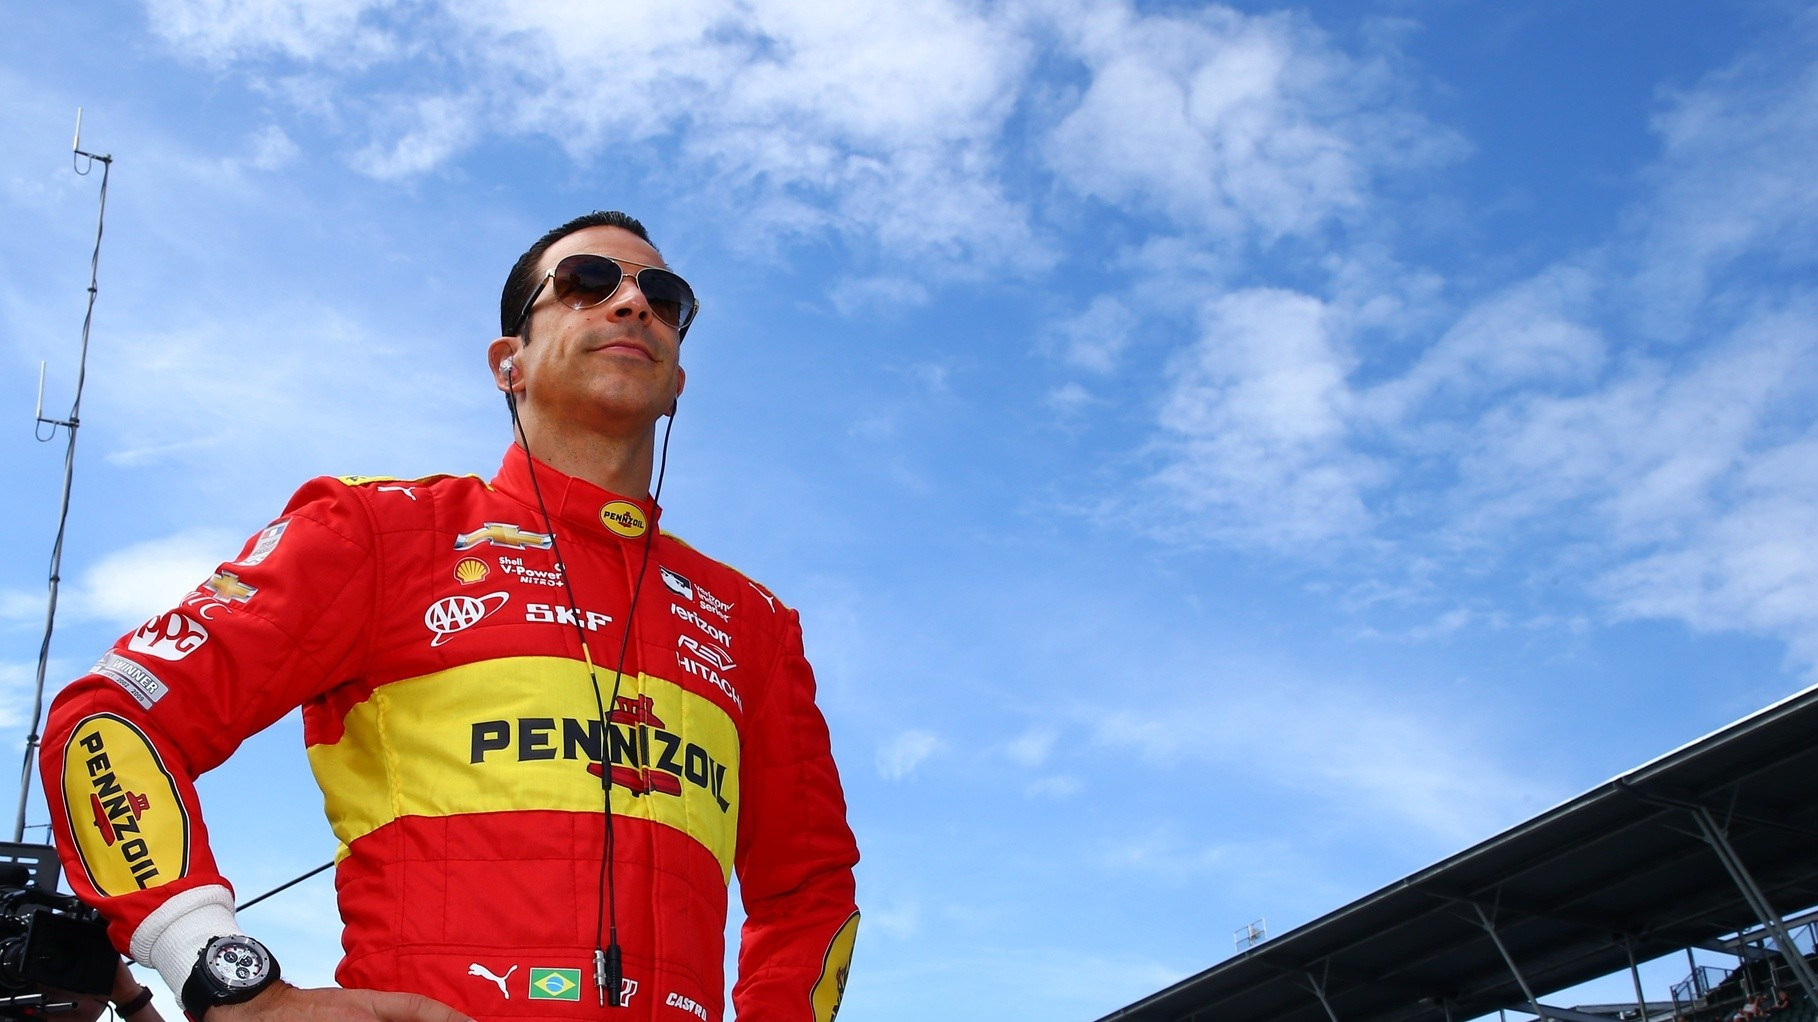 Helio Castroneves Is Young at Heart, Hungry for More Glory